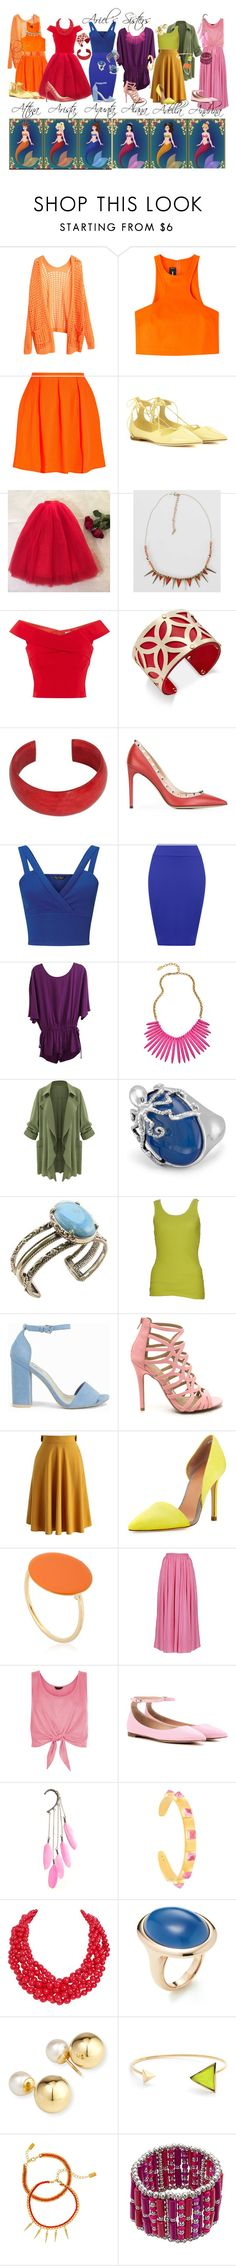 """""""Ariel's Sisters Inspired Outfits"""" by pie-epic ❤ liked on Polyvore featuring Disney, Dsquared2, Opening Ceremony, Jimmy Choo, Daytrip, Coast, Charter Club, NOVICA, Valentino and Miss Selfridge"""